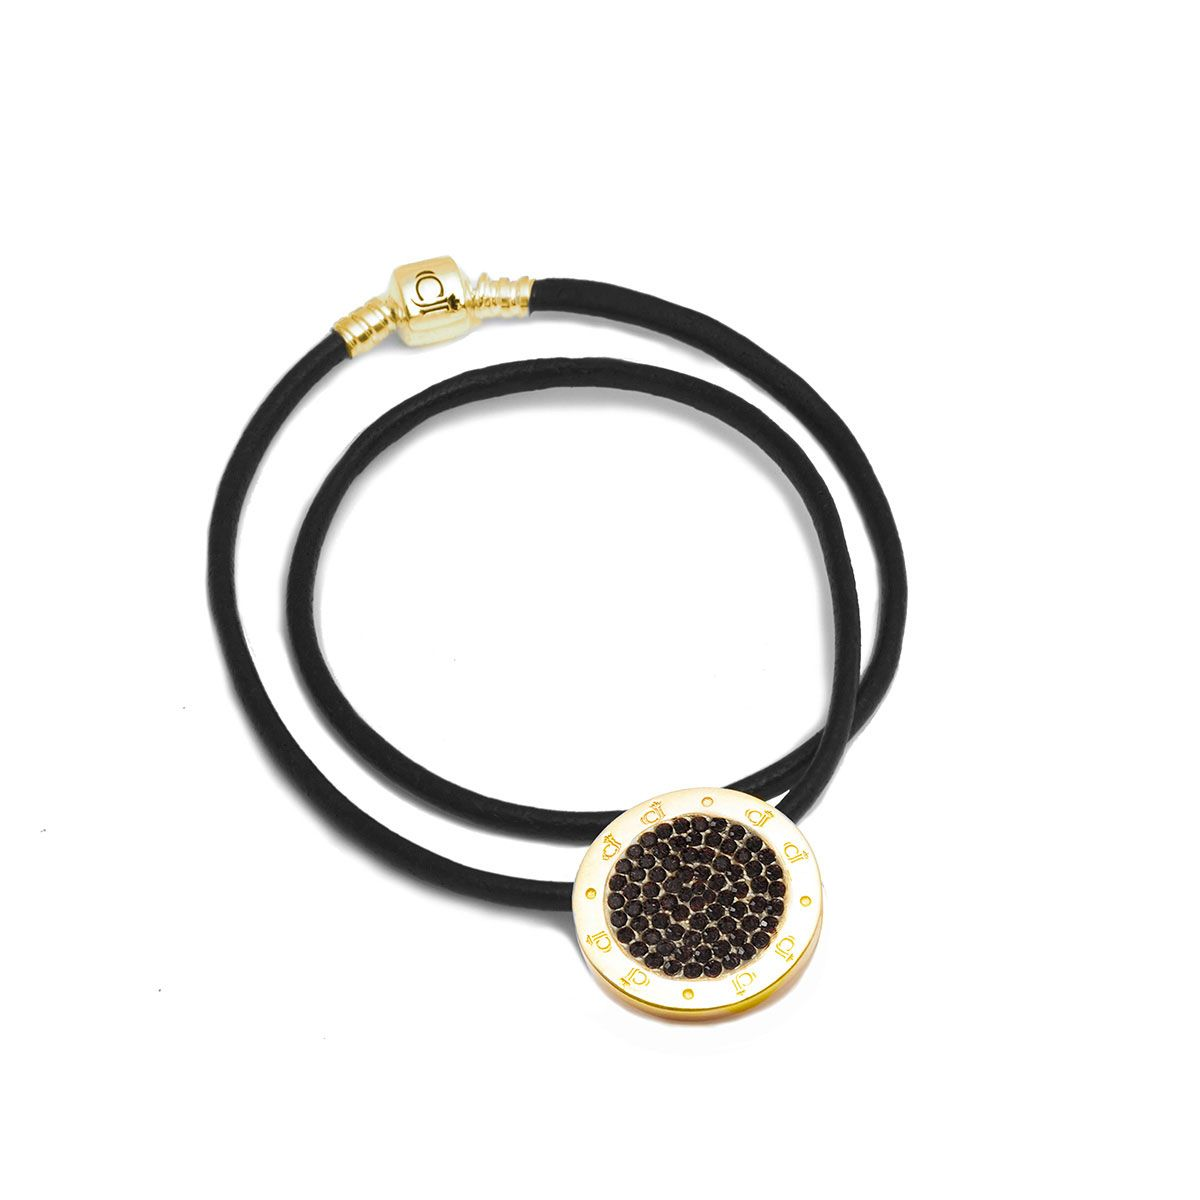 The CJ Golden Charm Leather Necklace Jet Black Allure alludes femininity, style and elegance. Wear it at work, at the office, or out on the town and make a statement! TheCJ Golden Charm Leather Necklace Jet Black Allure comes with a black leather chain with a .925 sterling silver gold tone clasp